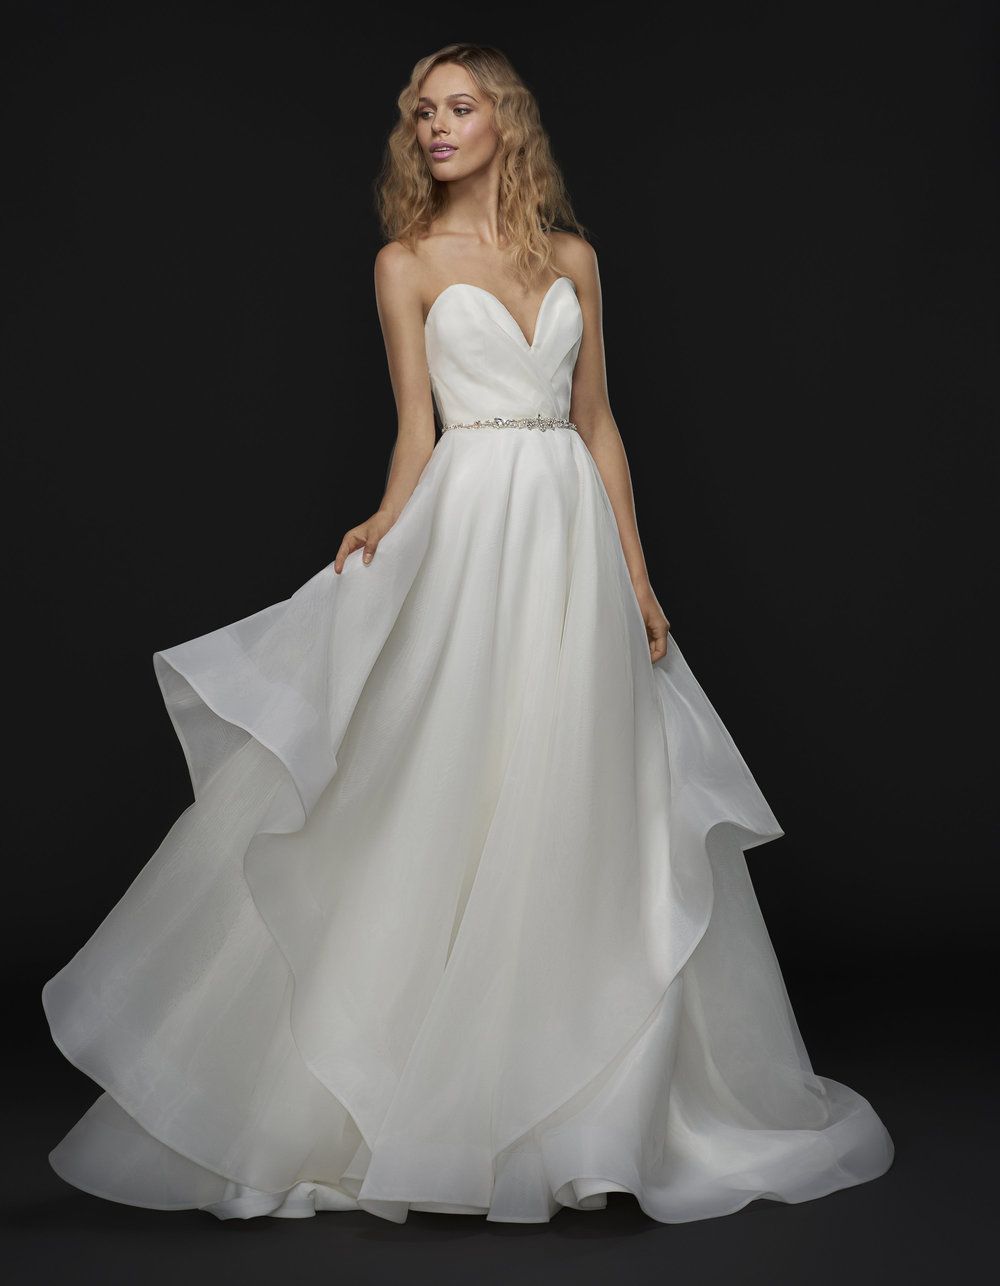 Meet Kingston: airy, classic, timeless. Of all the dresses from the newest collection, this dress is for that girl that loves HP but wants to wear a dress that will be forever loved. With it's timeless perfectly sweet silhouette, soft organza and sweetheart neckline this gown is for the Southern belle who wants to be an everlasting beauty.